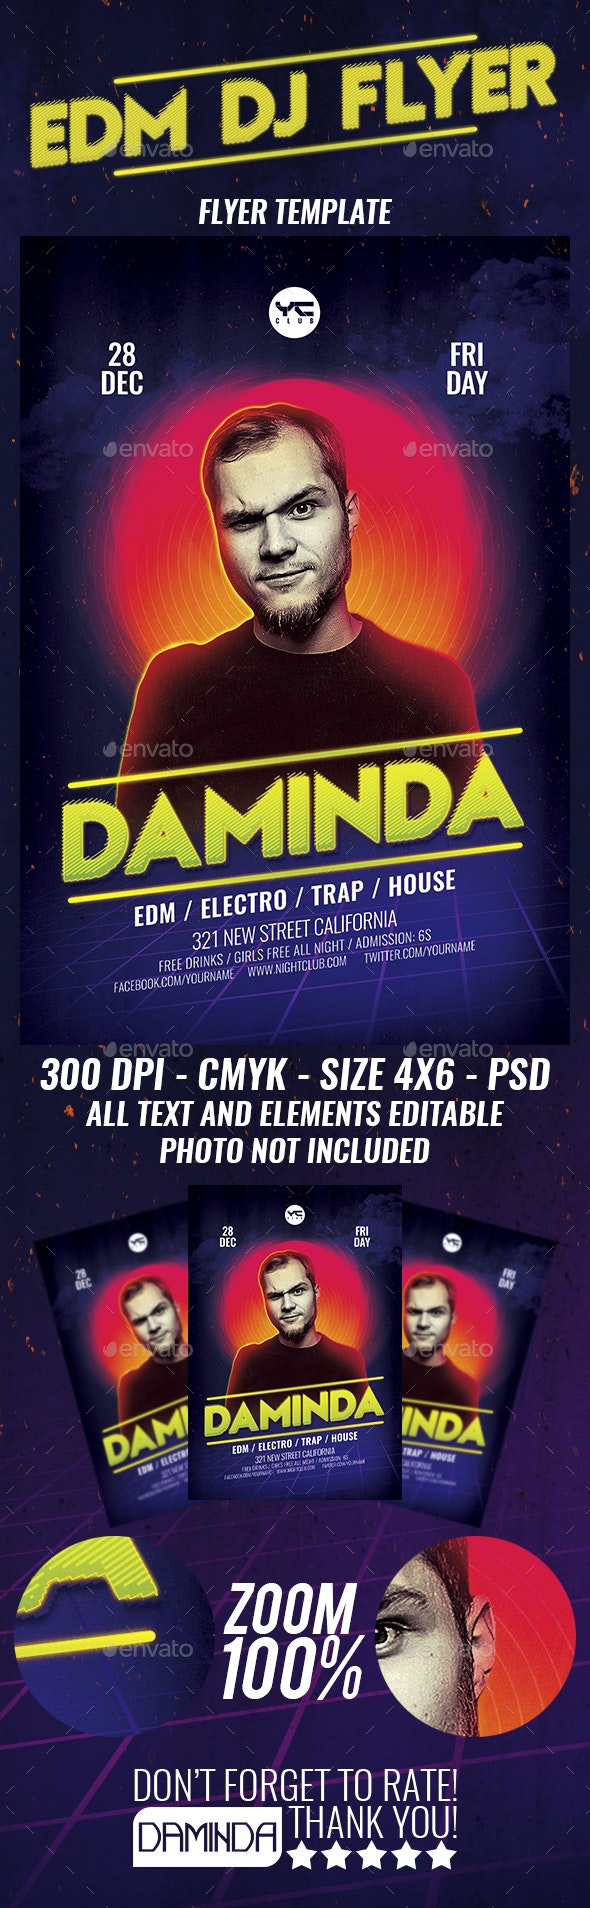 Electro Dj Poster 15 Flyer Template - Clubs & Parties Events